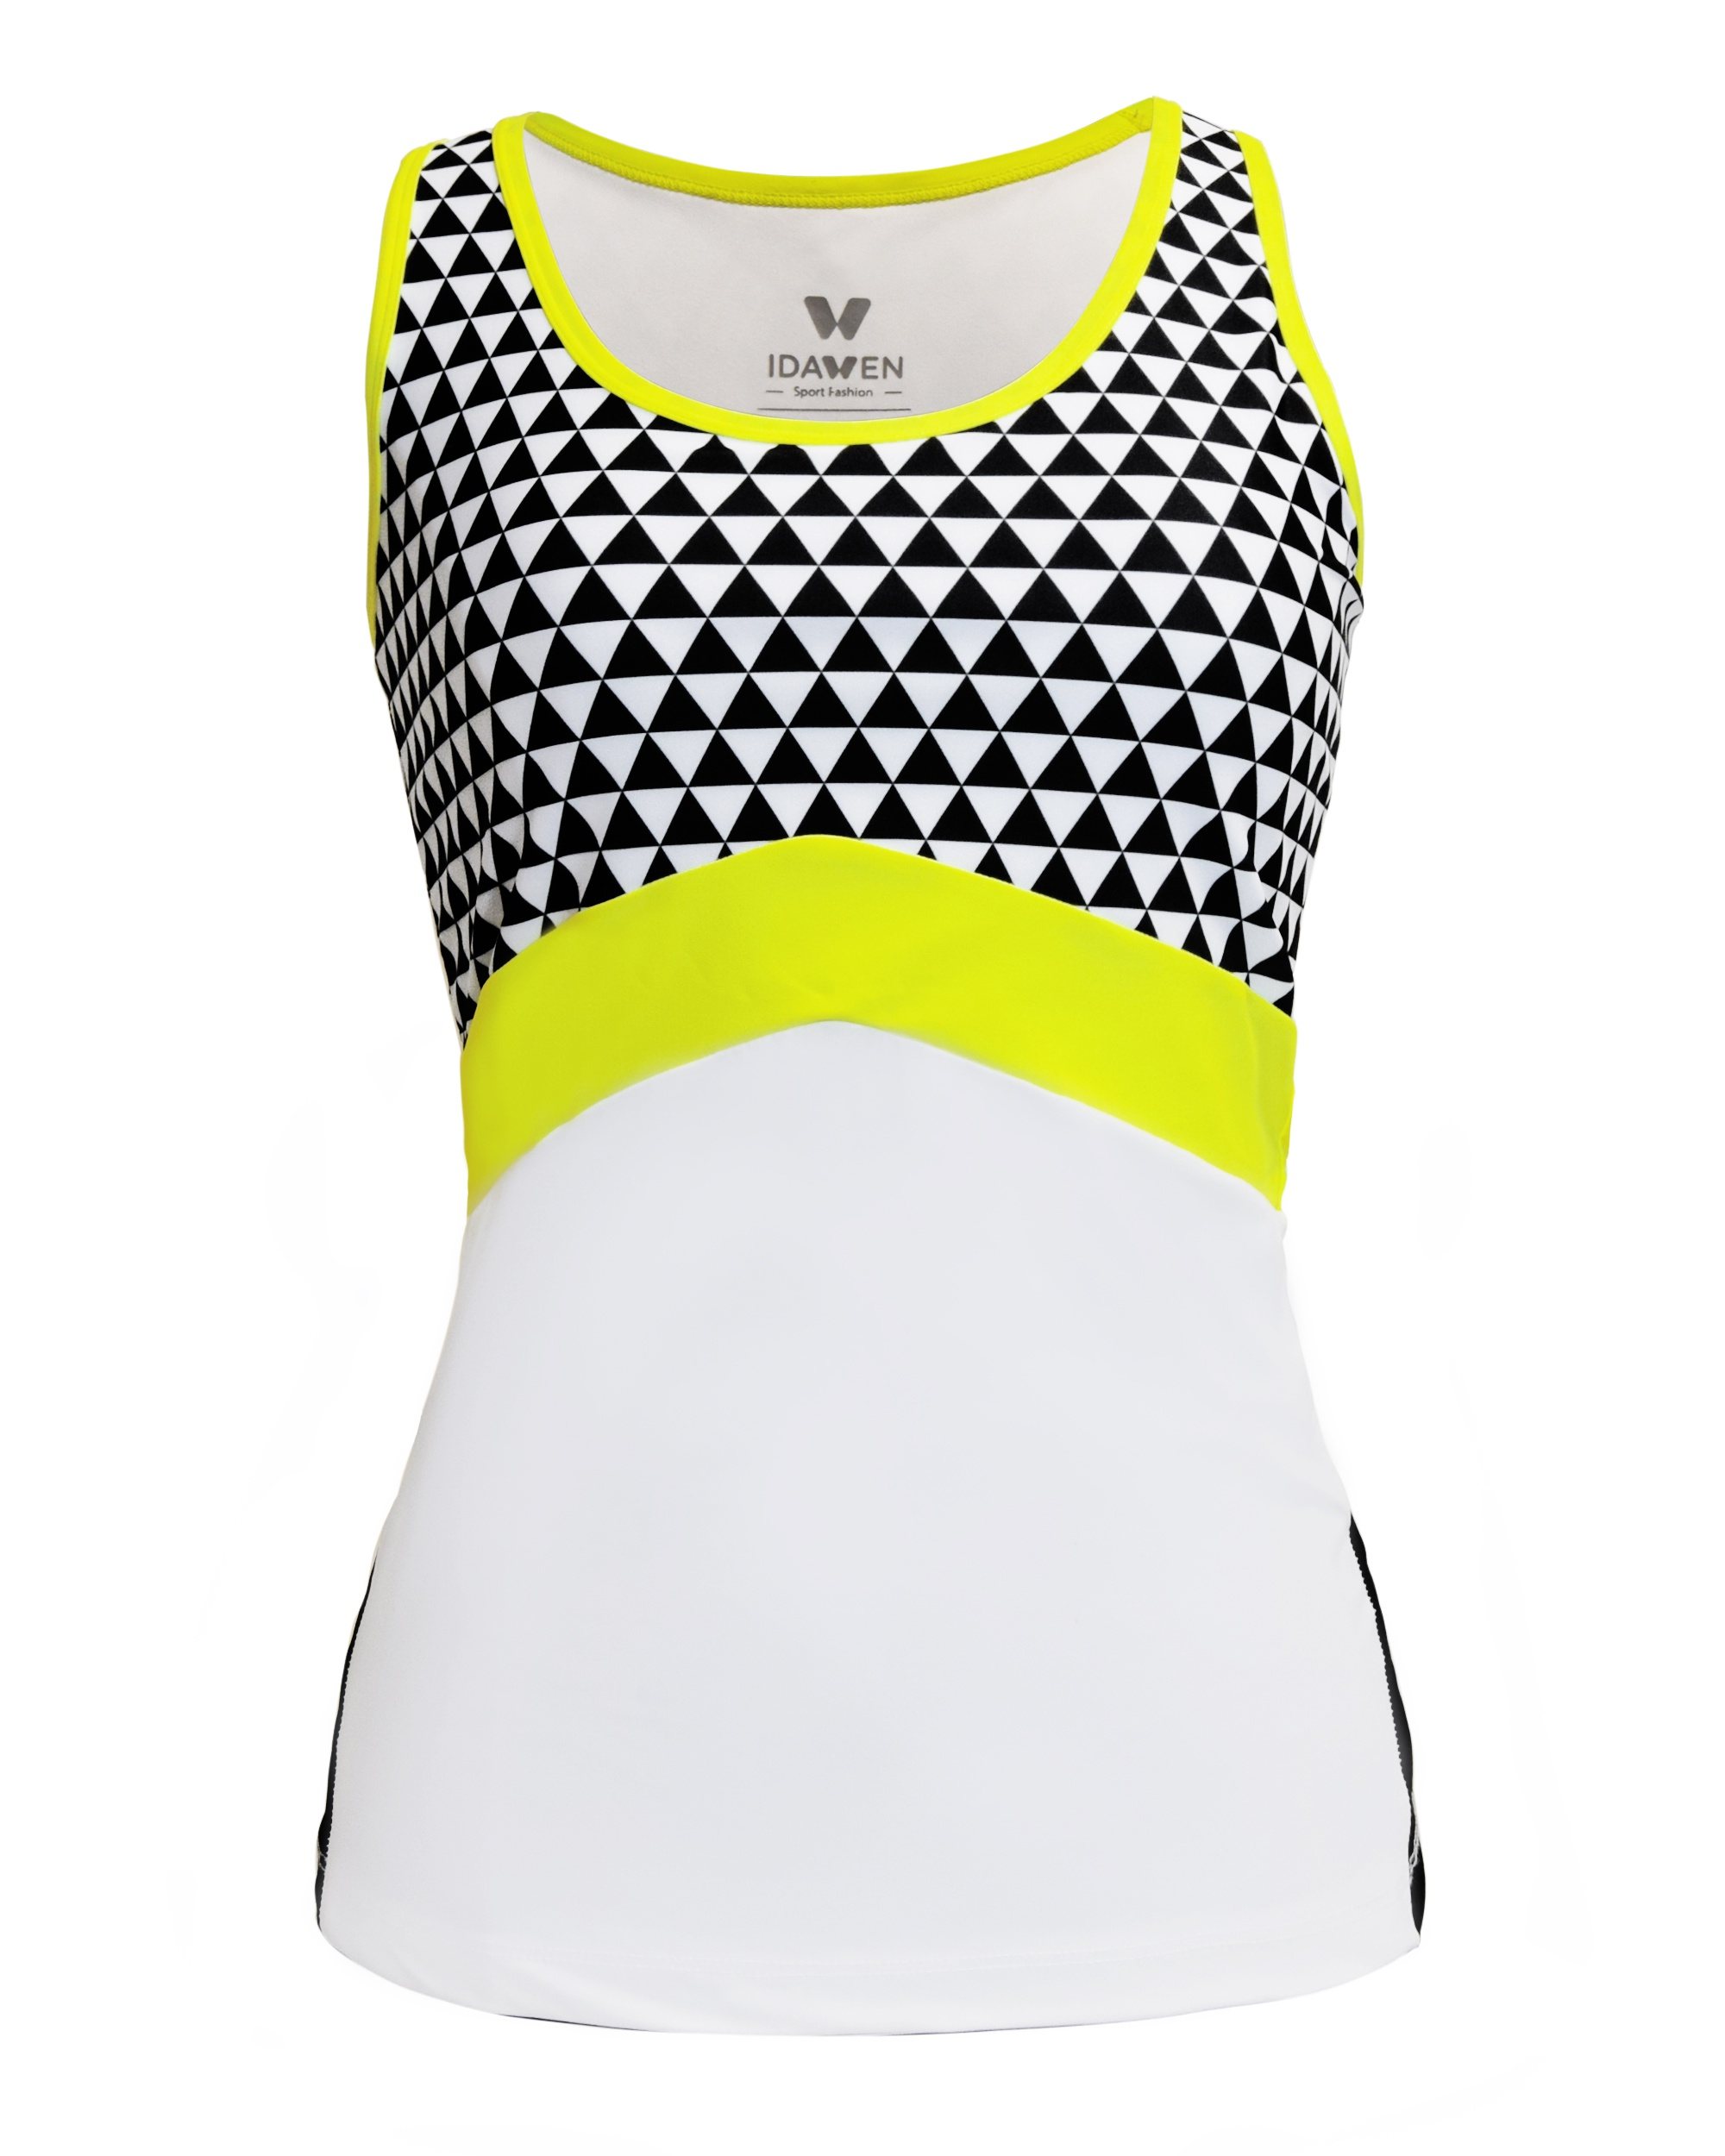 4a5c2e1caf28c SPORTS TOP WHITE AND BLACK WOMAN Activewear donesn t have to be